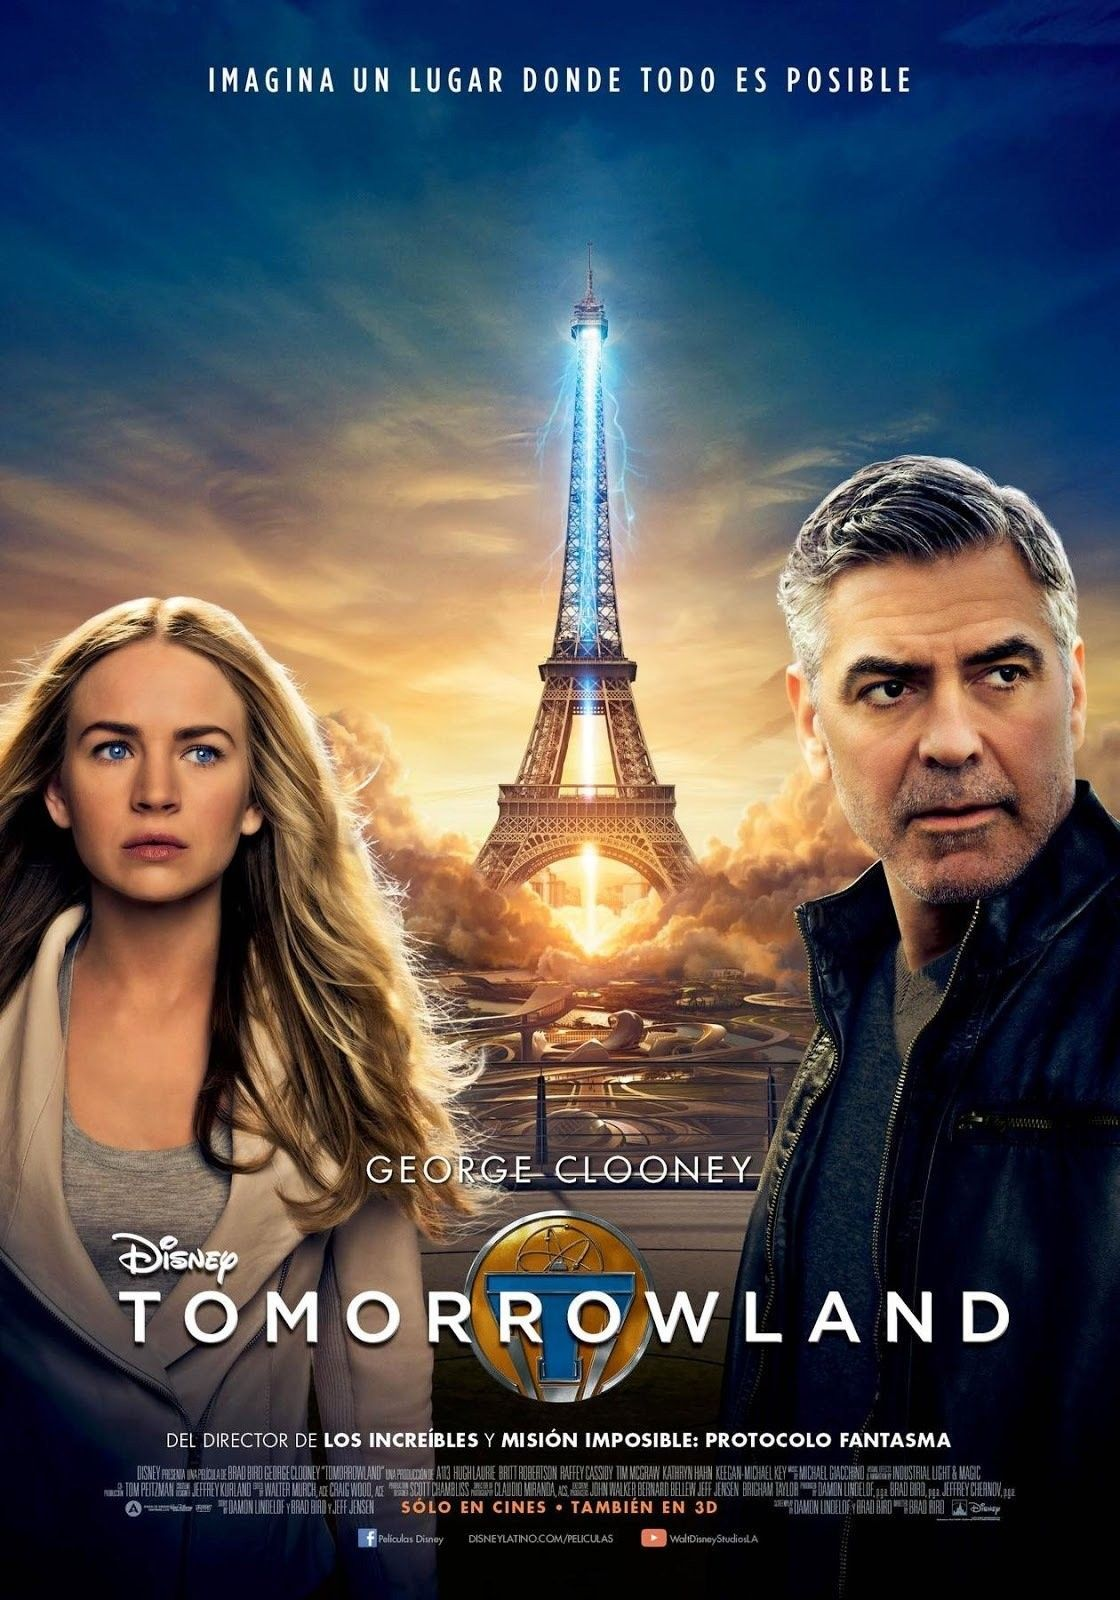 Ver Tomorrowland El Mundo Del Mañana Online Gratis 2015 Hd Película Completa Español Tomorrowland Movie Disney Live Action Movies Free Movies Online